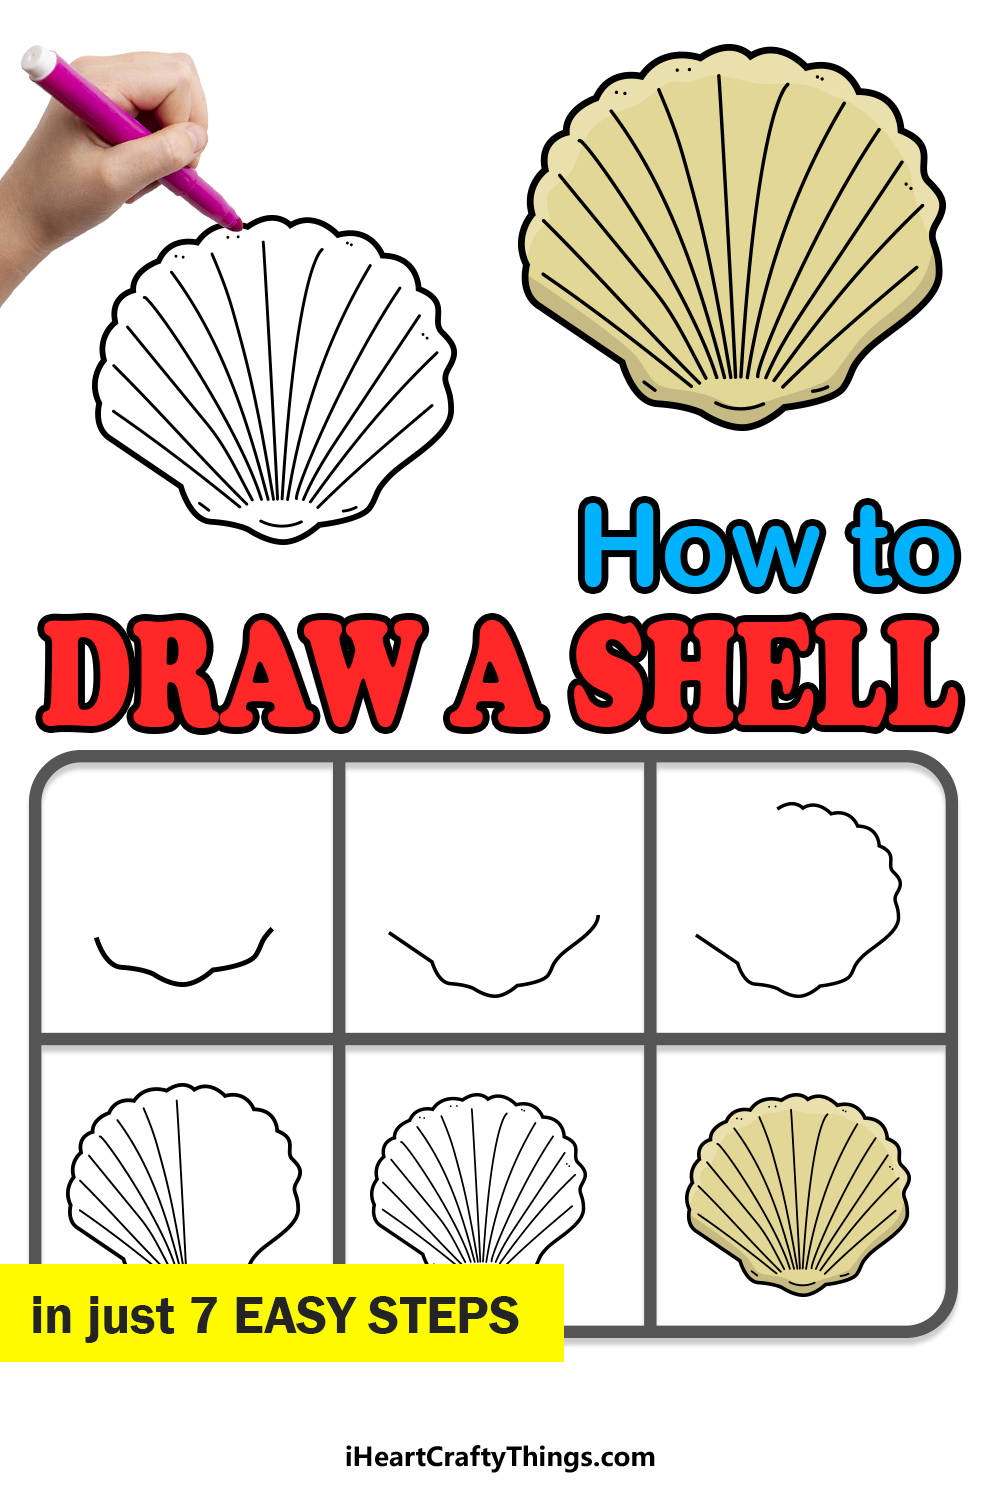 how to draw a shell in 7 easy steps